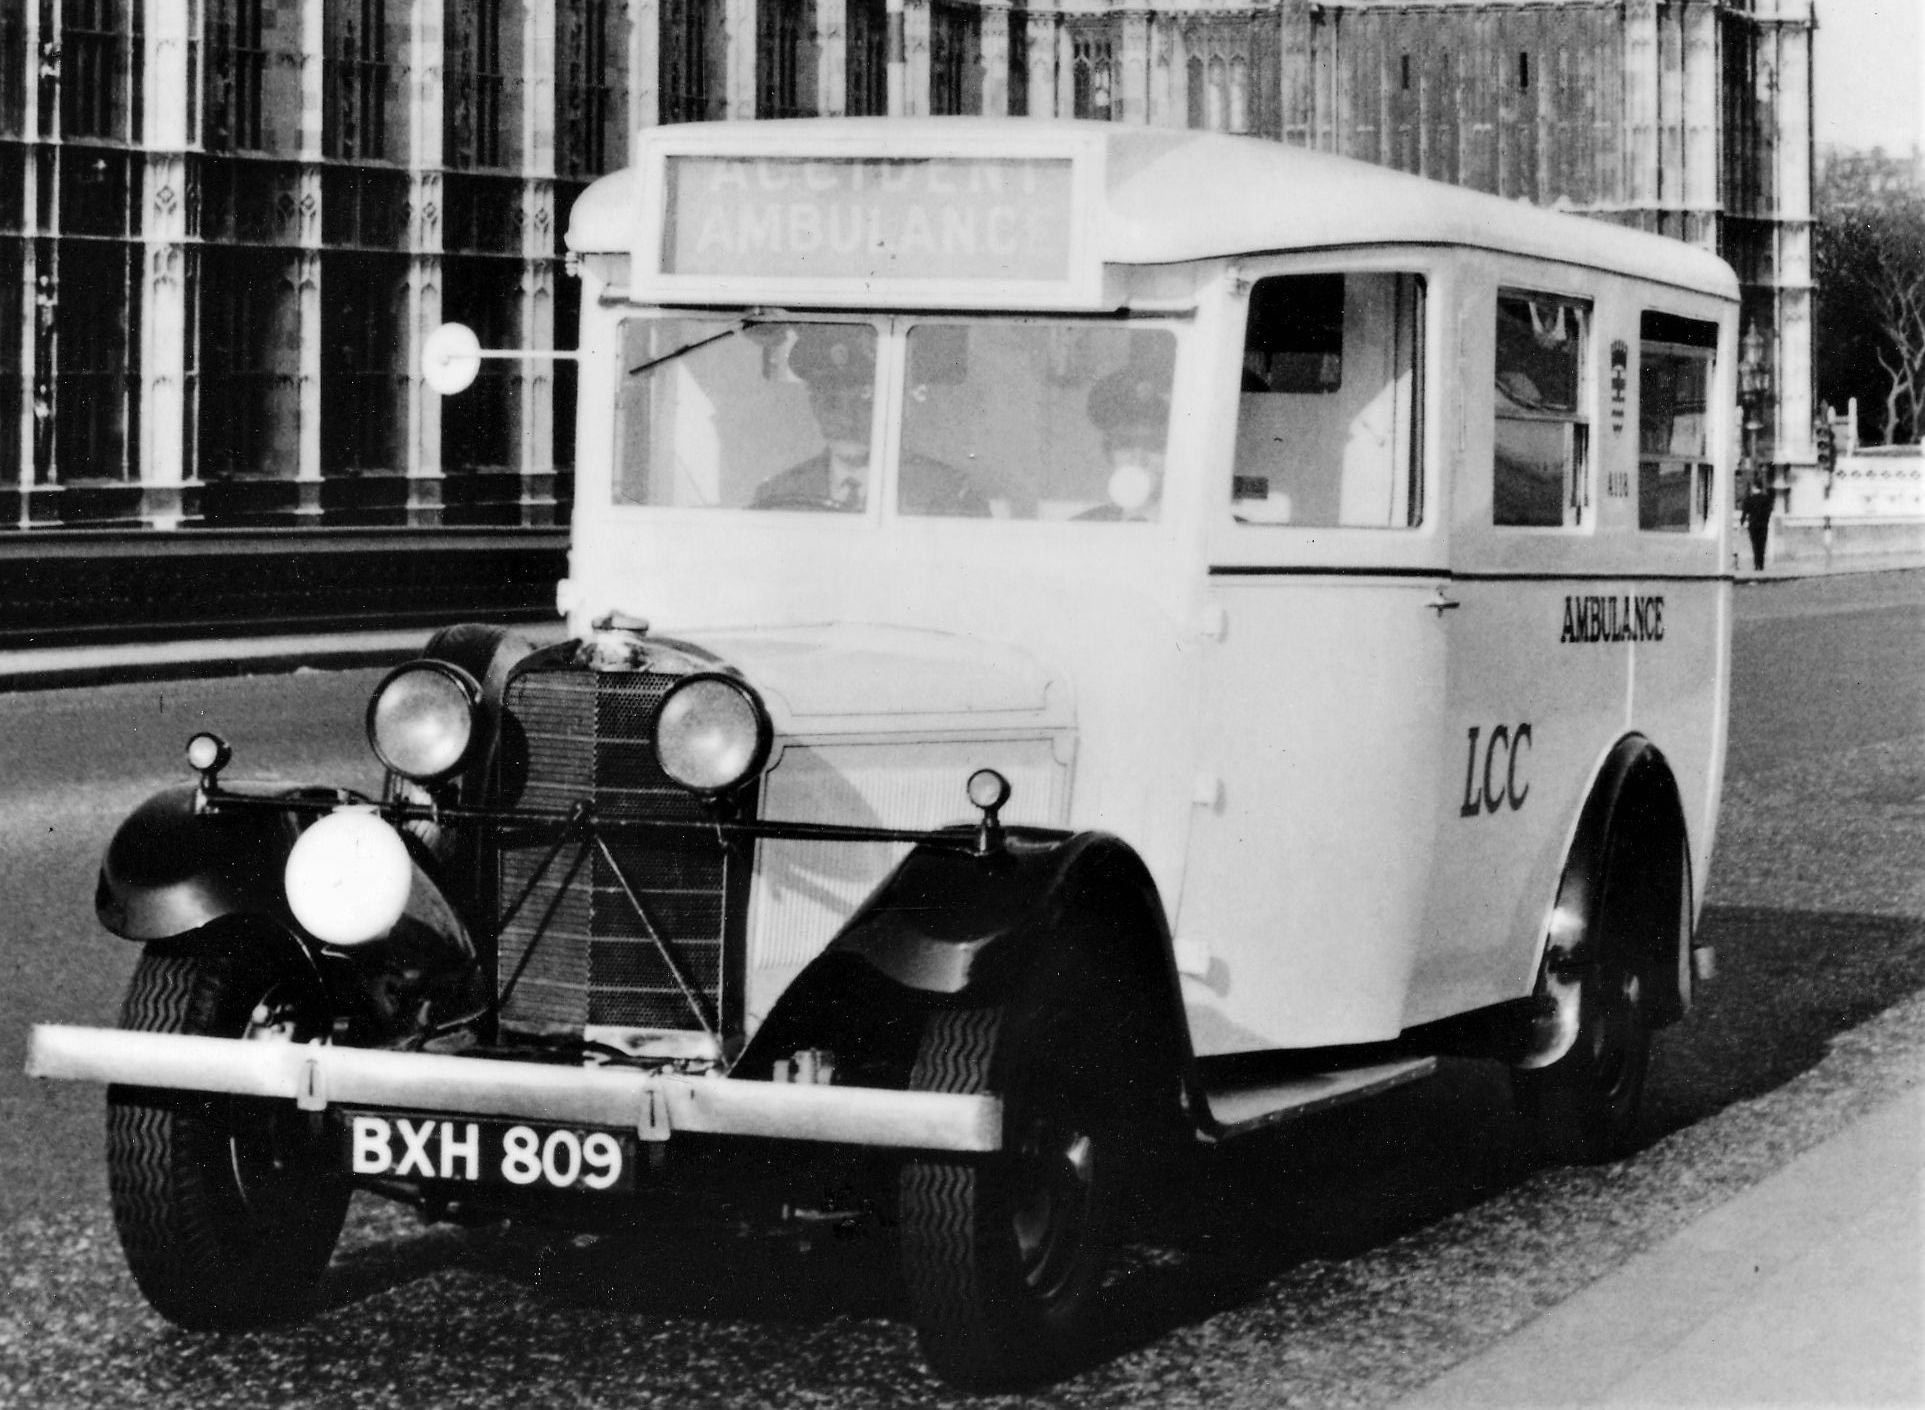 Come to the rescue of this historic wartime Talbot ambulance